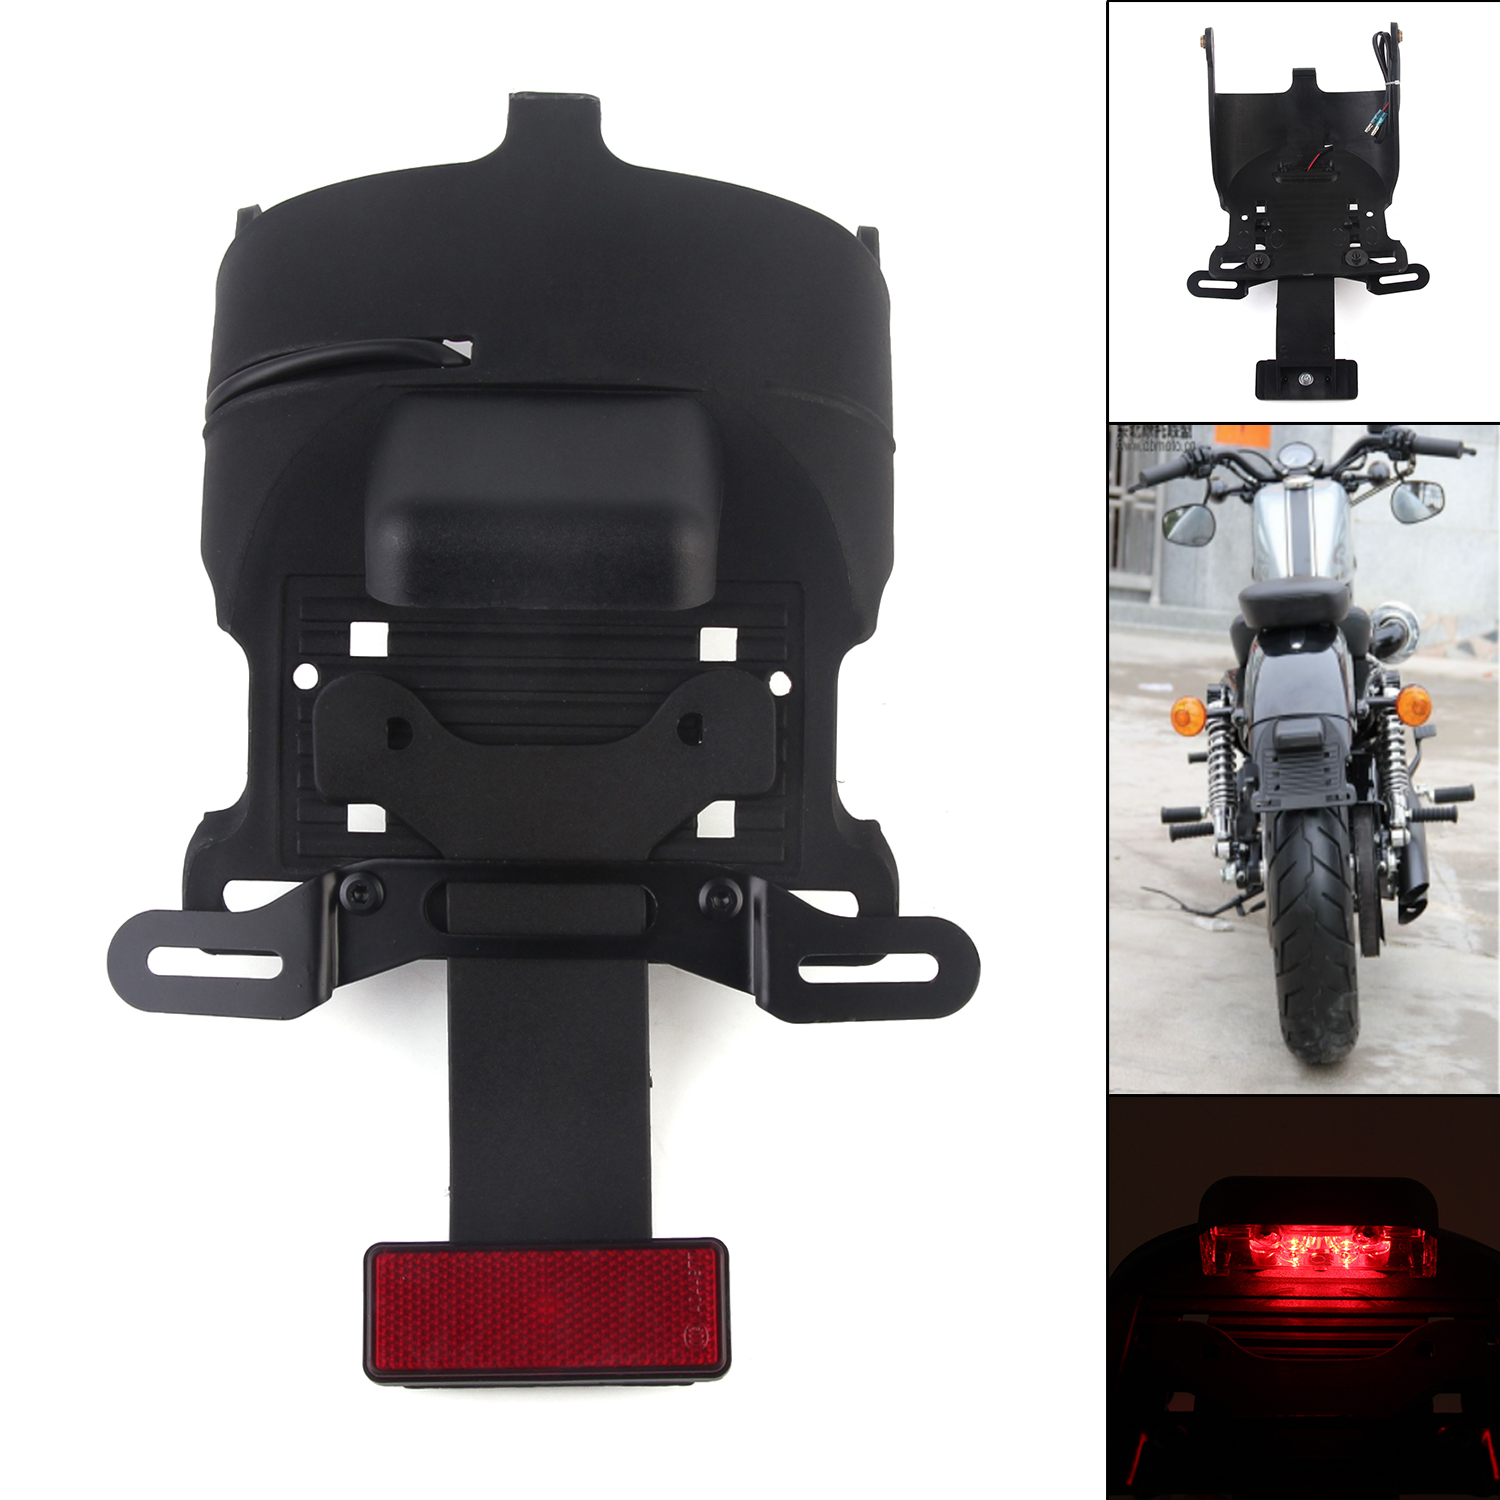 Neverland Plastic Motorcycle Fender LED License Plate Light Mount Bracket For Harley Sportster 883 1200 D35 brand new silver color motortcycle accessories abs plastic led tail light fit for harley harley iron 883 xl883n xl1200n chopped